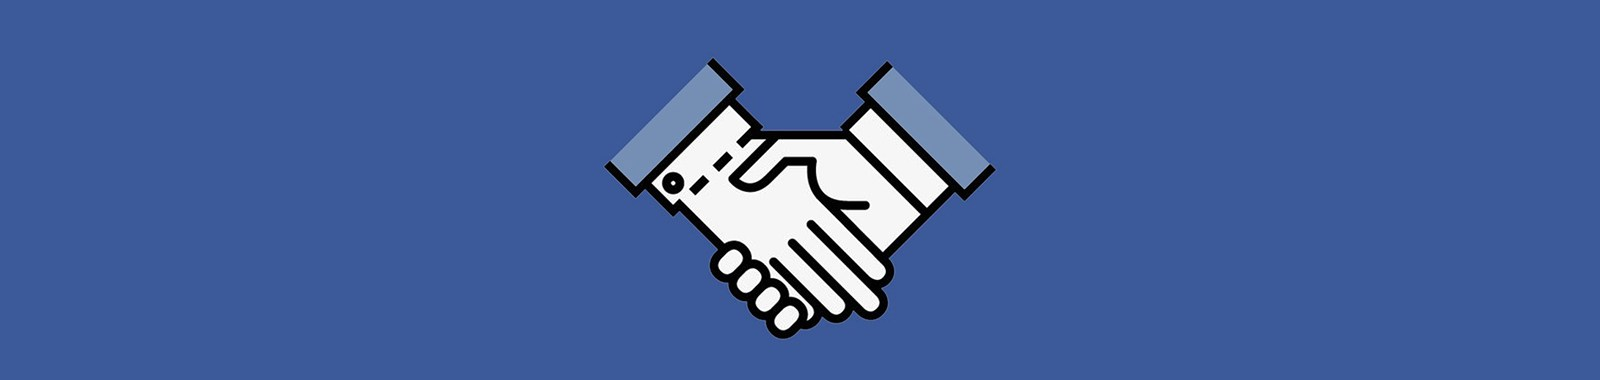 fb-partnership-eye